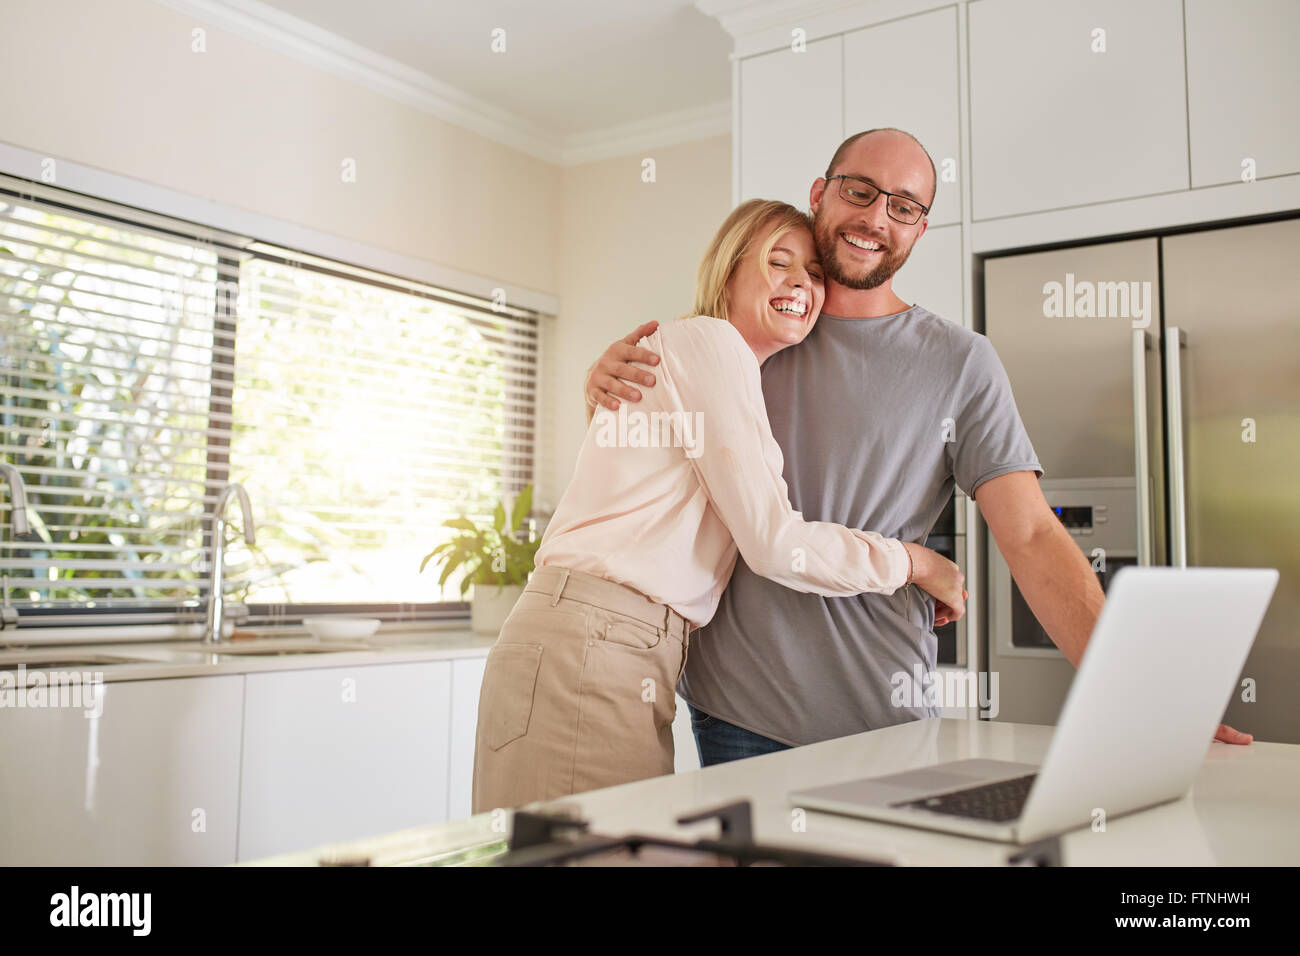 Indoor shot of loving couple in kitchen with a laptop. Mature man and woman embracing each other and smiling with - Stock Image